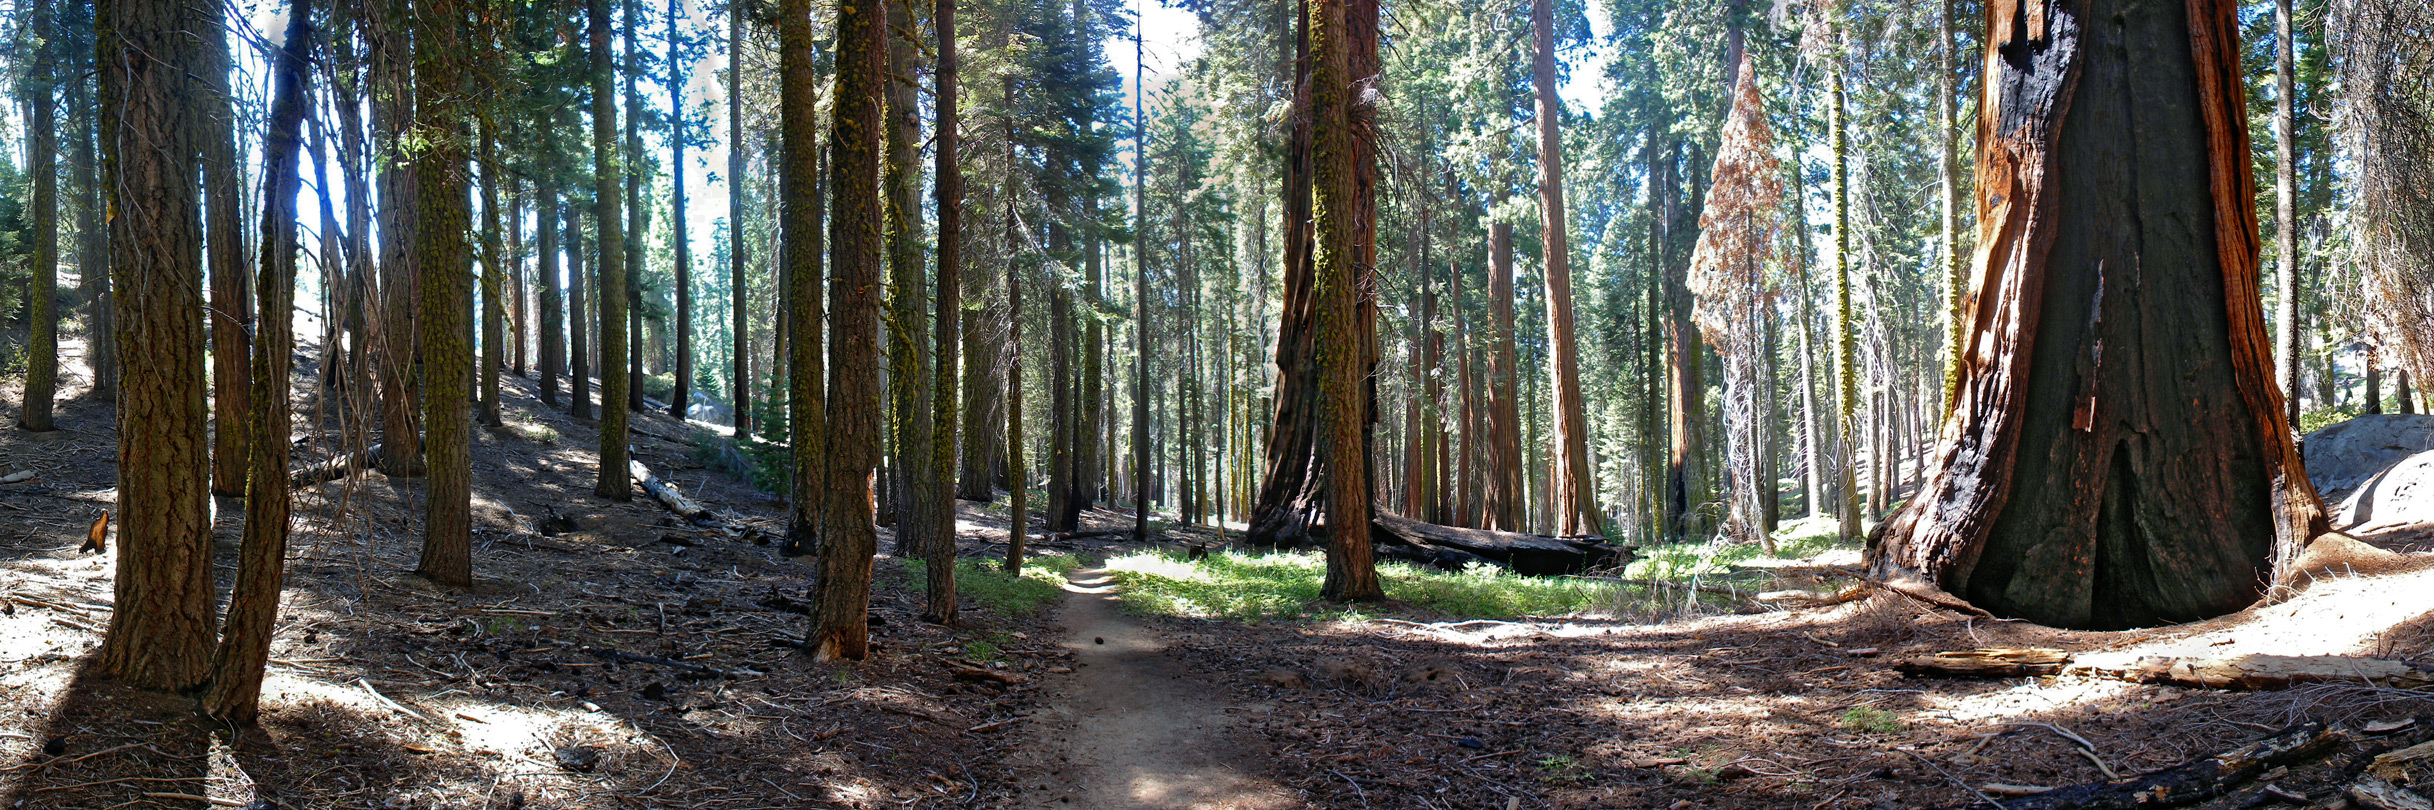 Typical view along the Huckleberry Trail